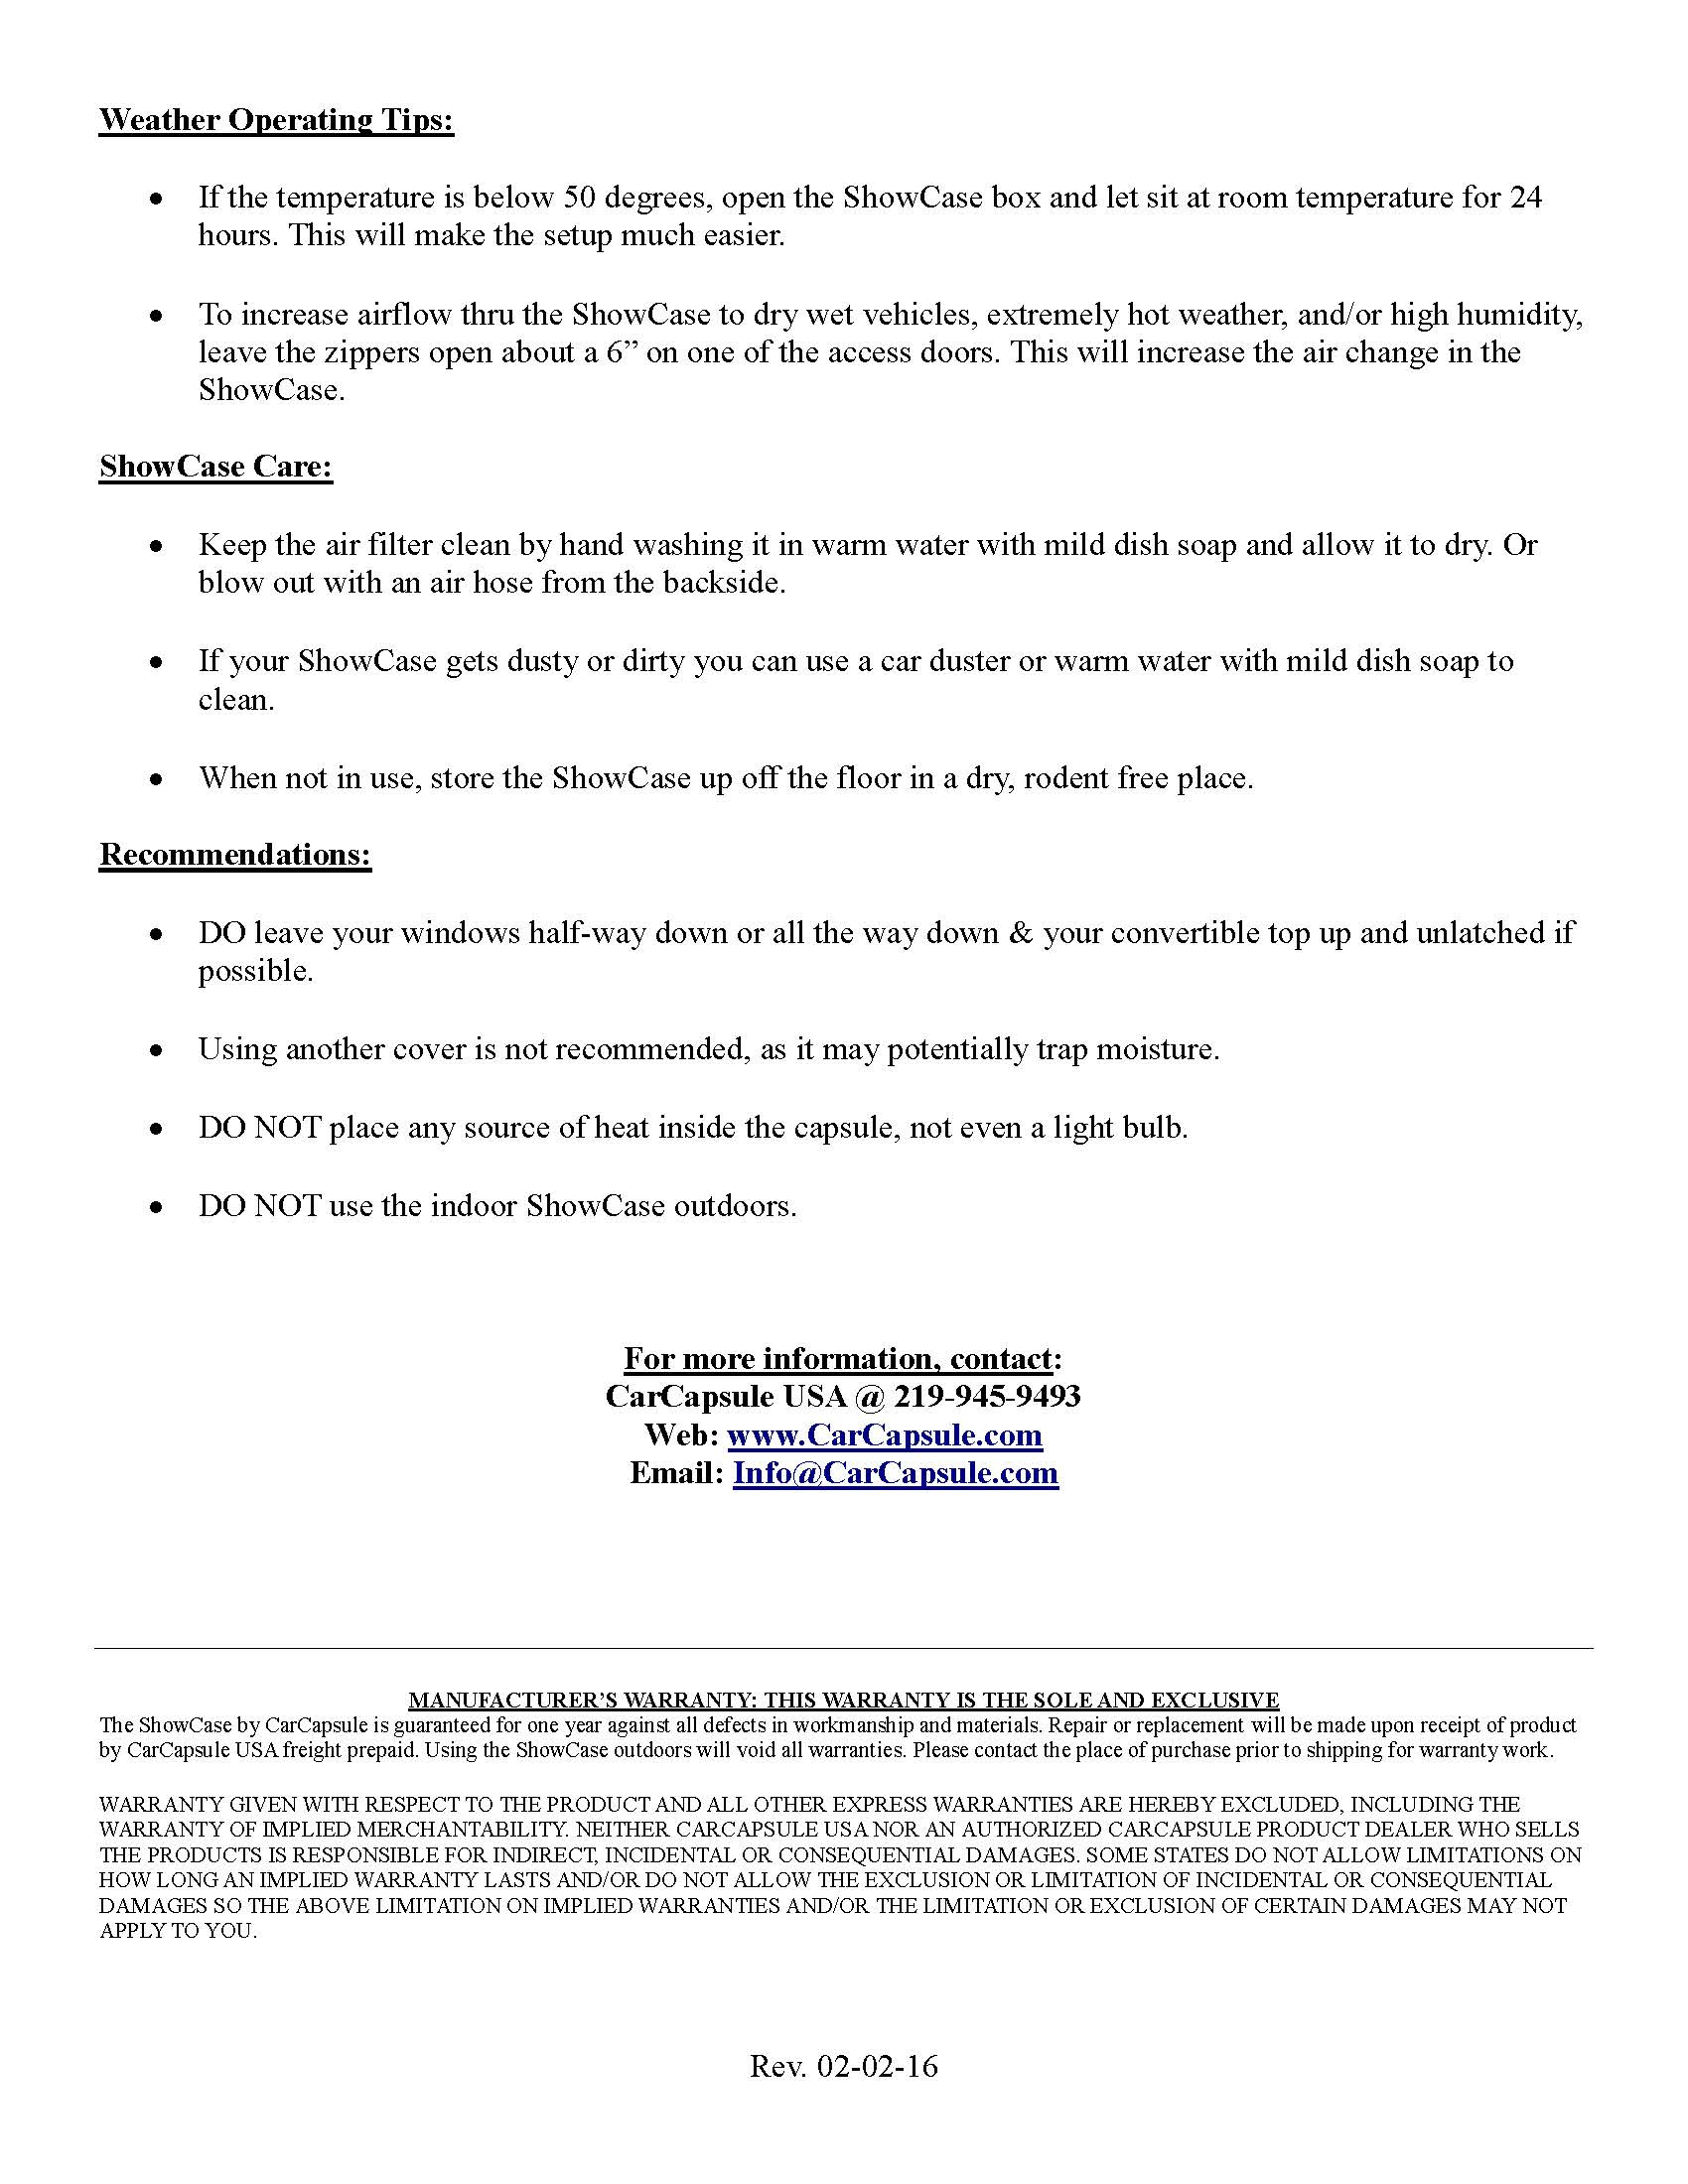 indoorcarshowcaseinstructions-page-2.jpg